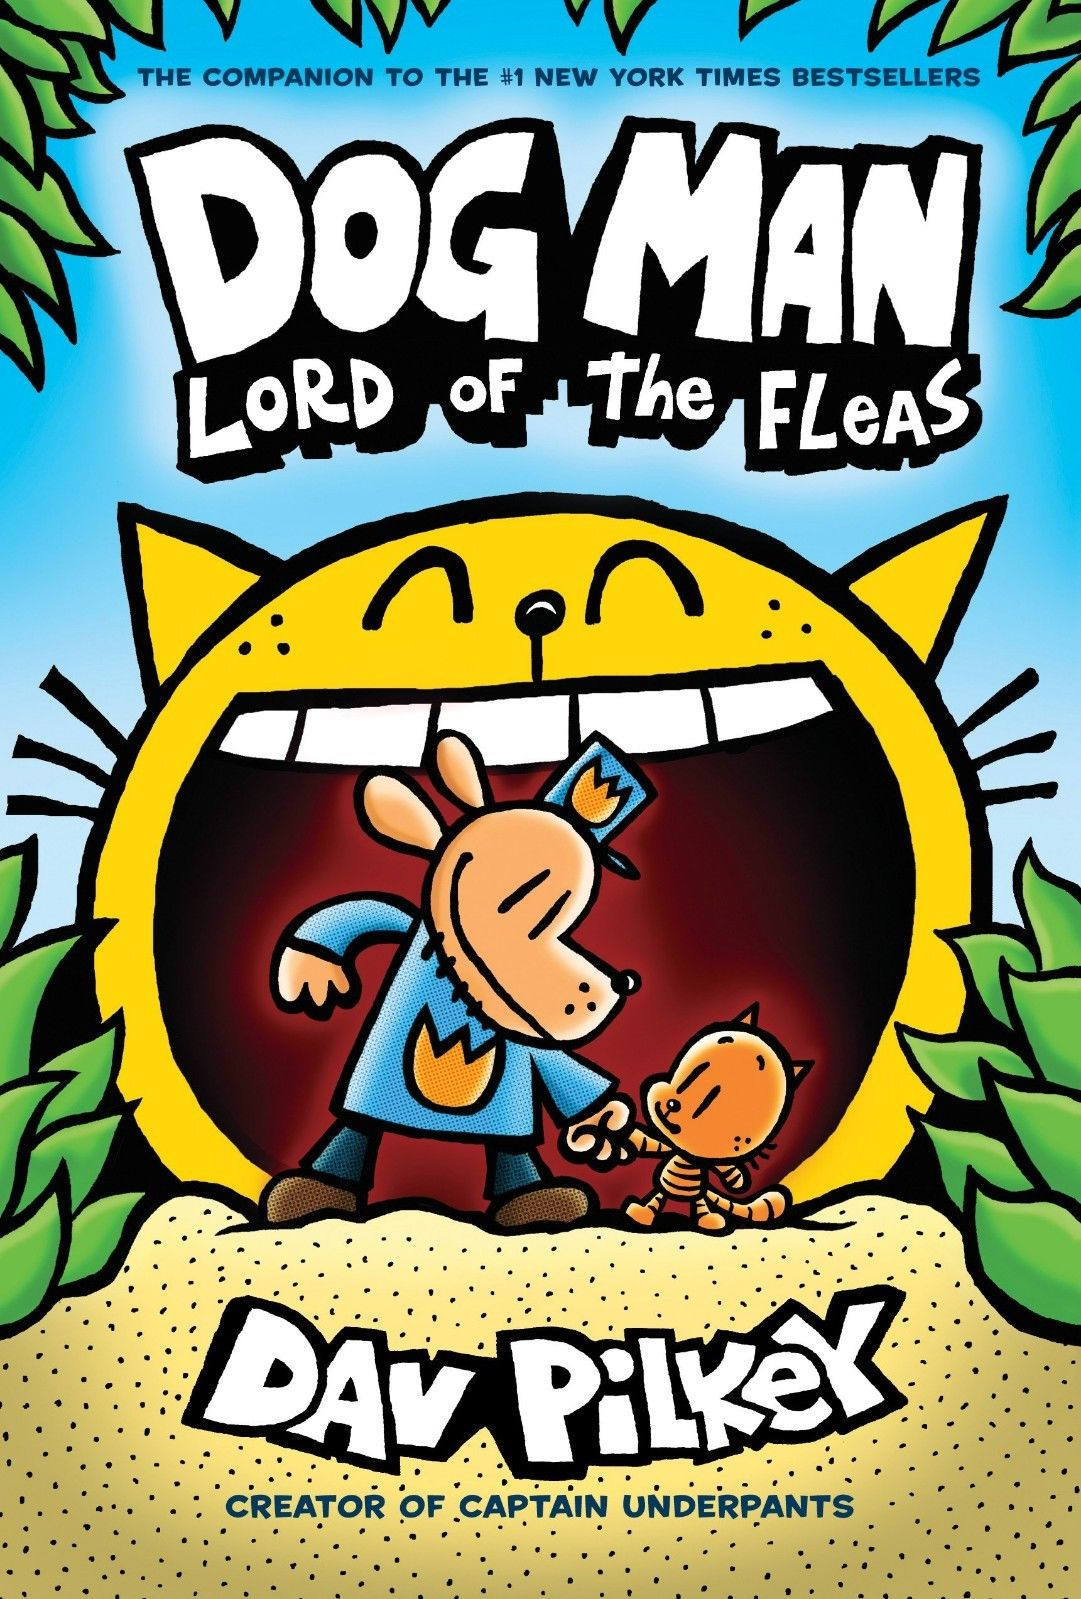 Dog Man: Lord of the Fleas: From the Creator of Captain by Dav Pilkey Hardcover